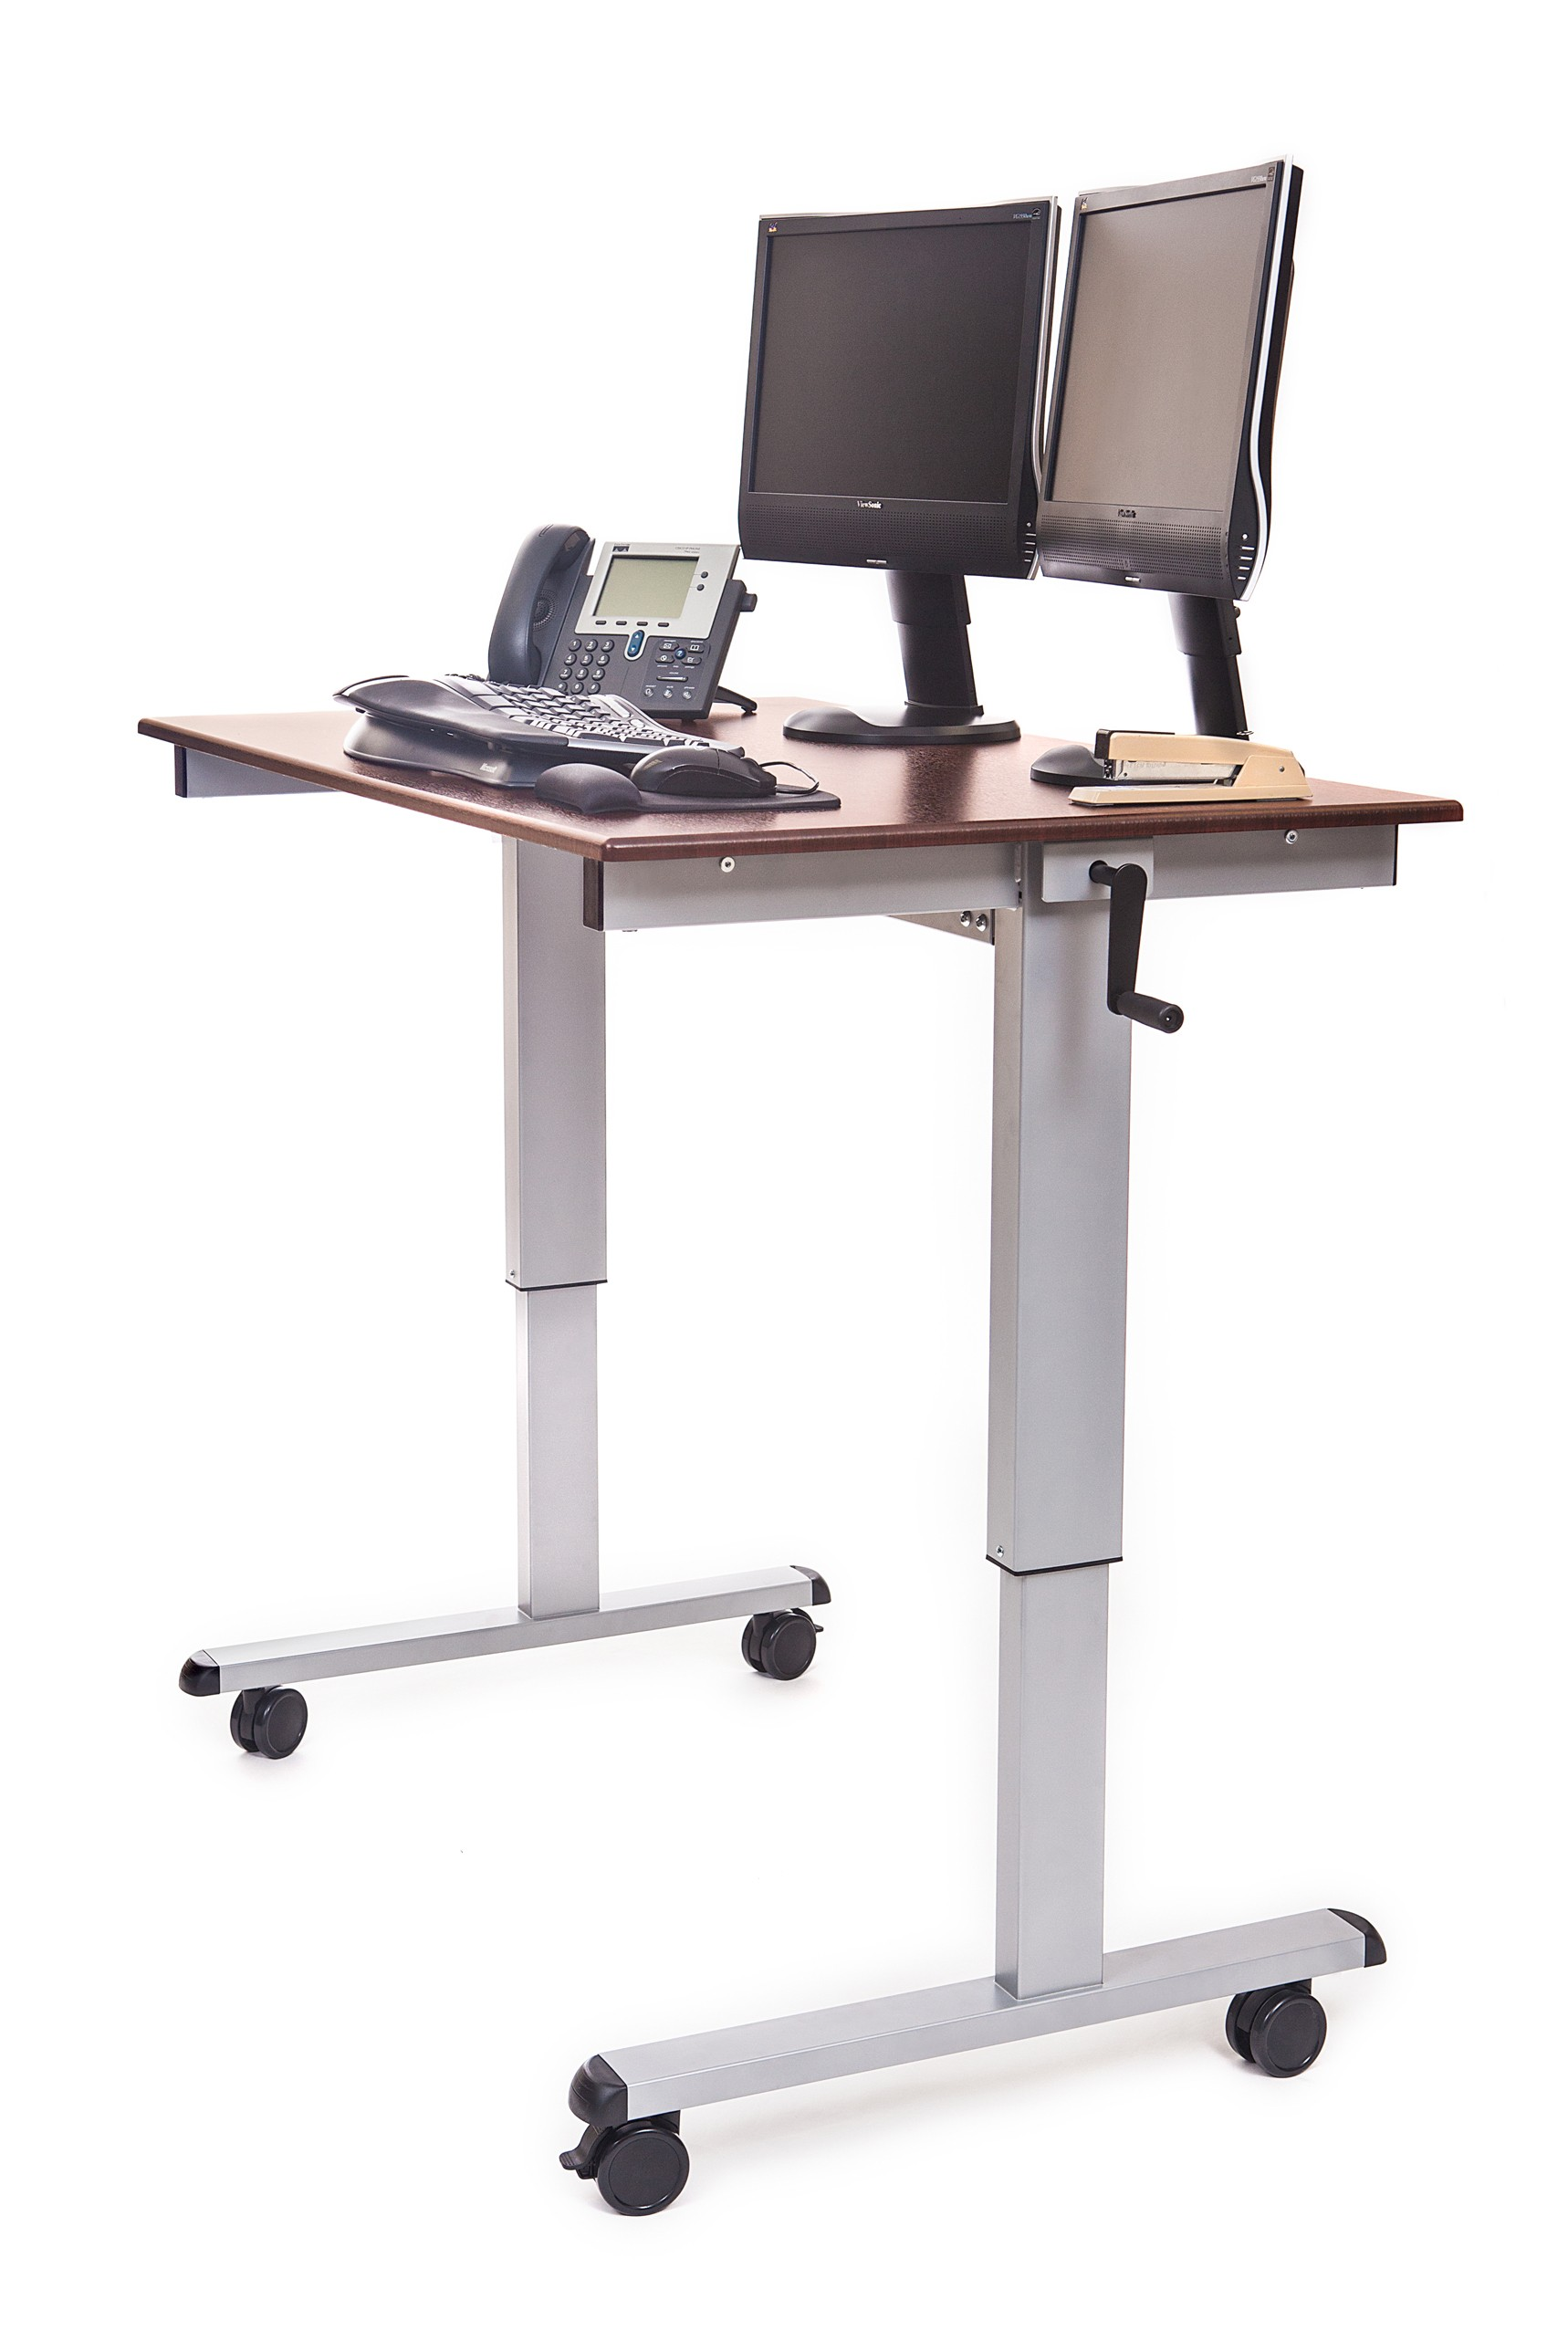 desk mobile stand height cart mi computer adjustable up presentation it work station mount rolling